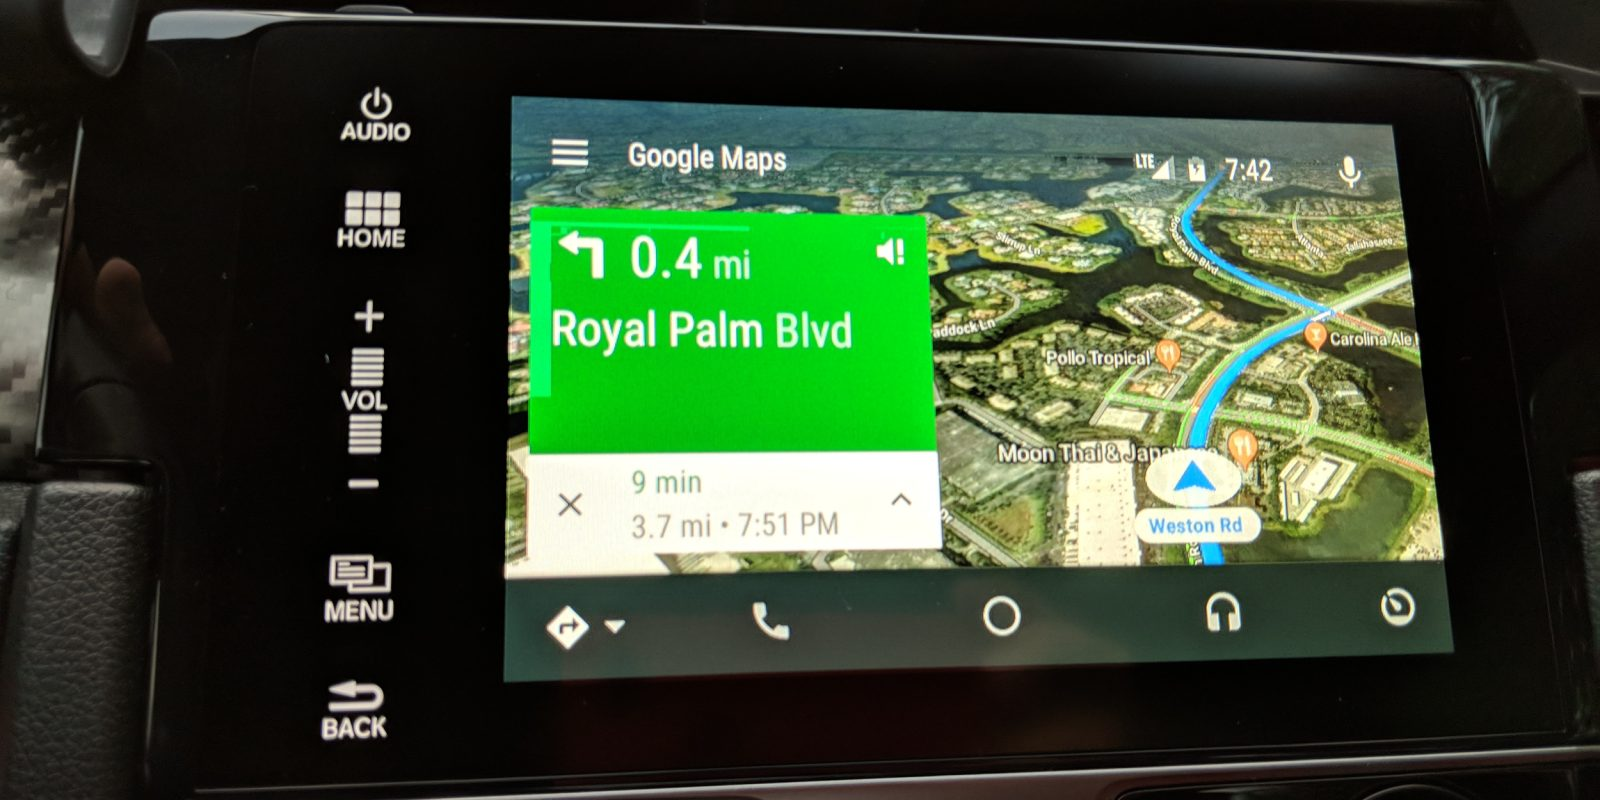 Google Maps On Android Auto Now Has A Satellite View 9to5google